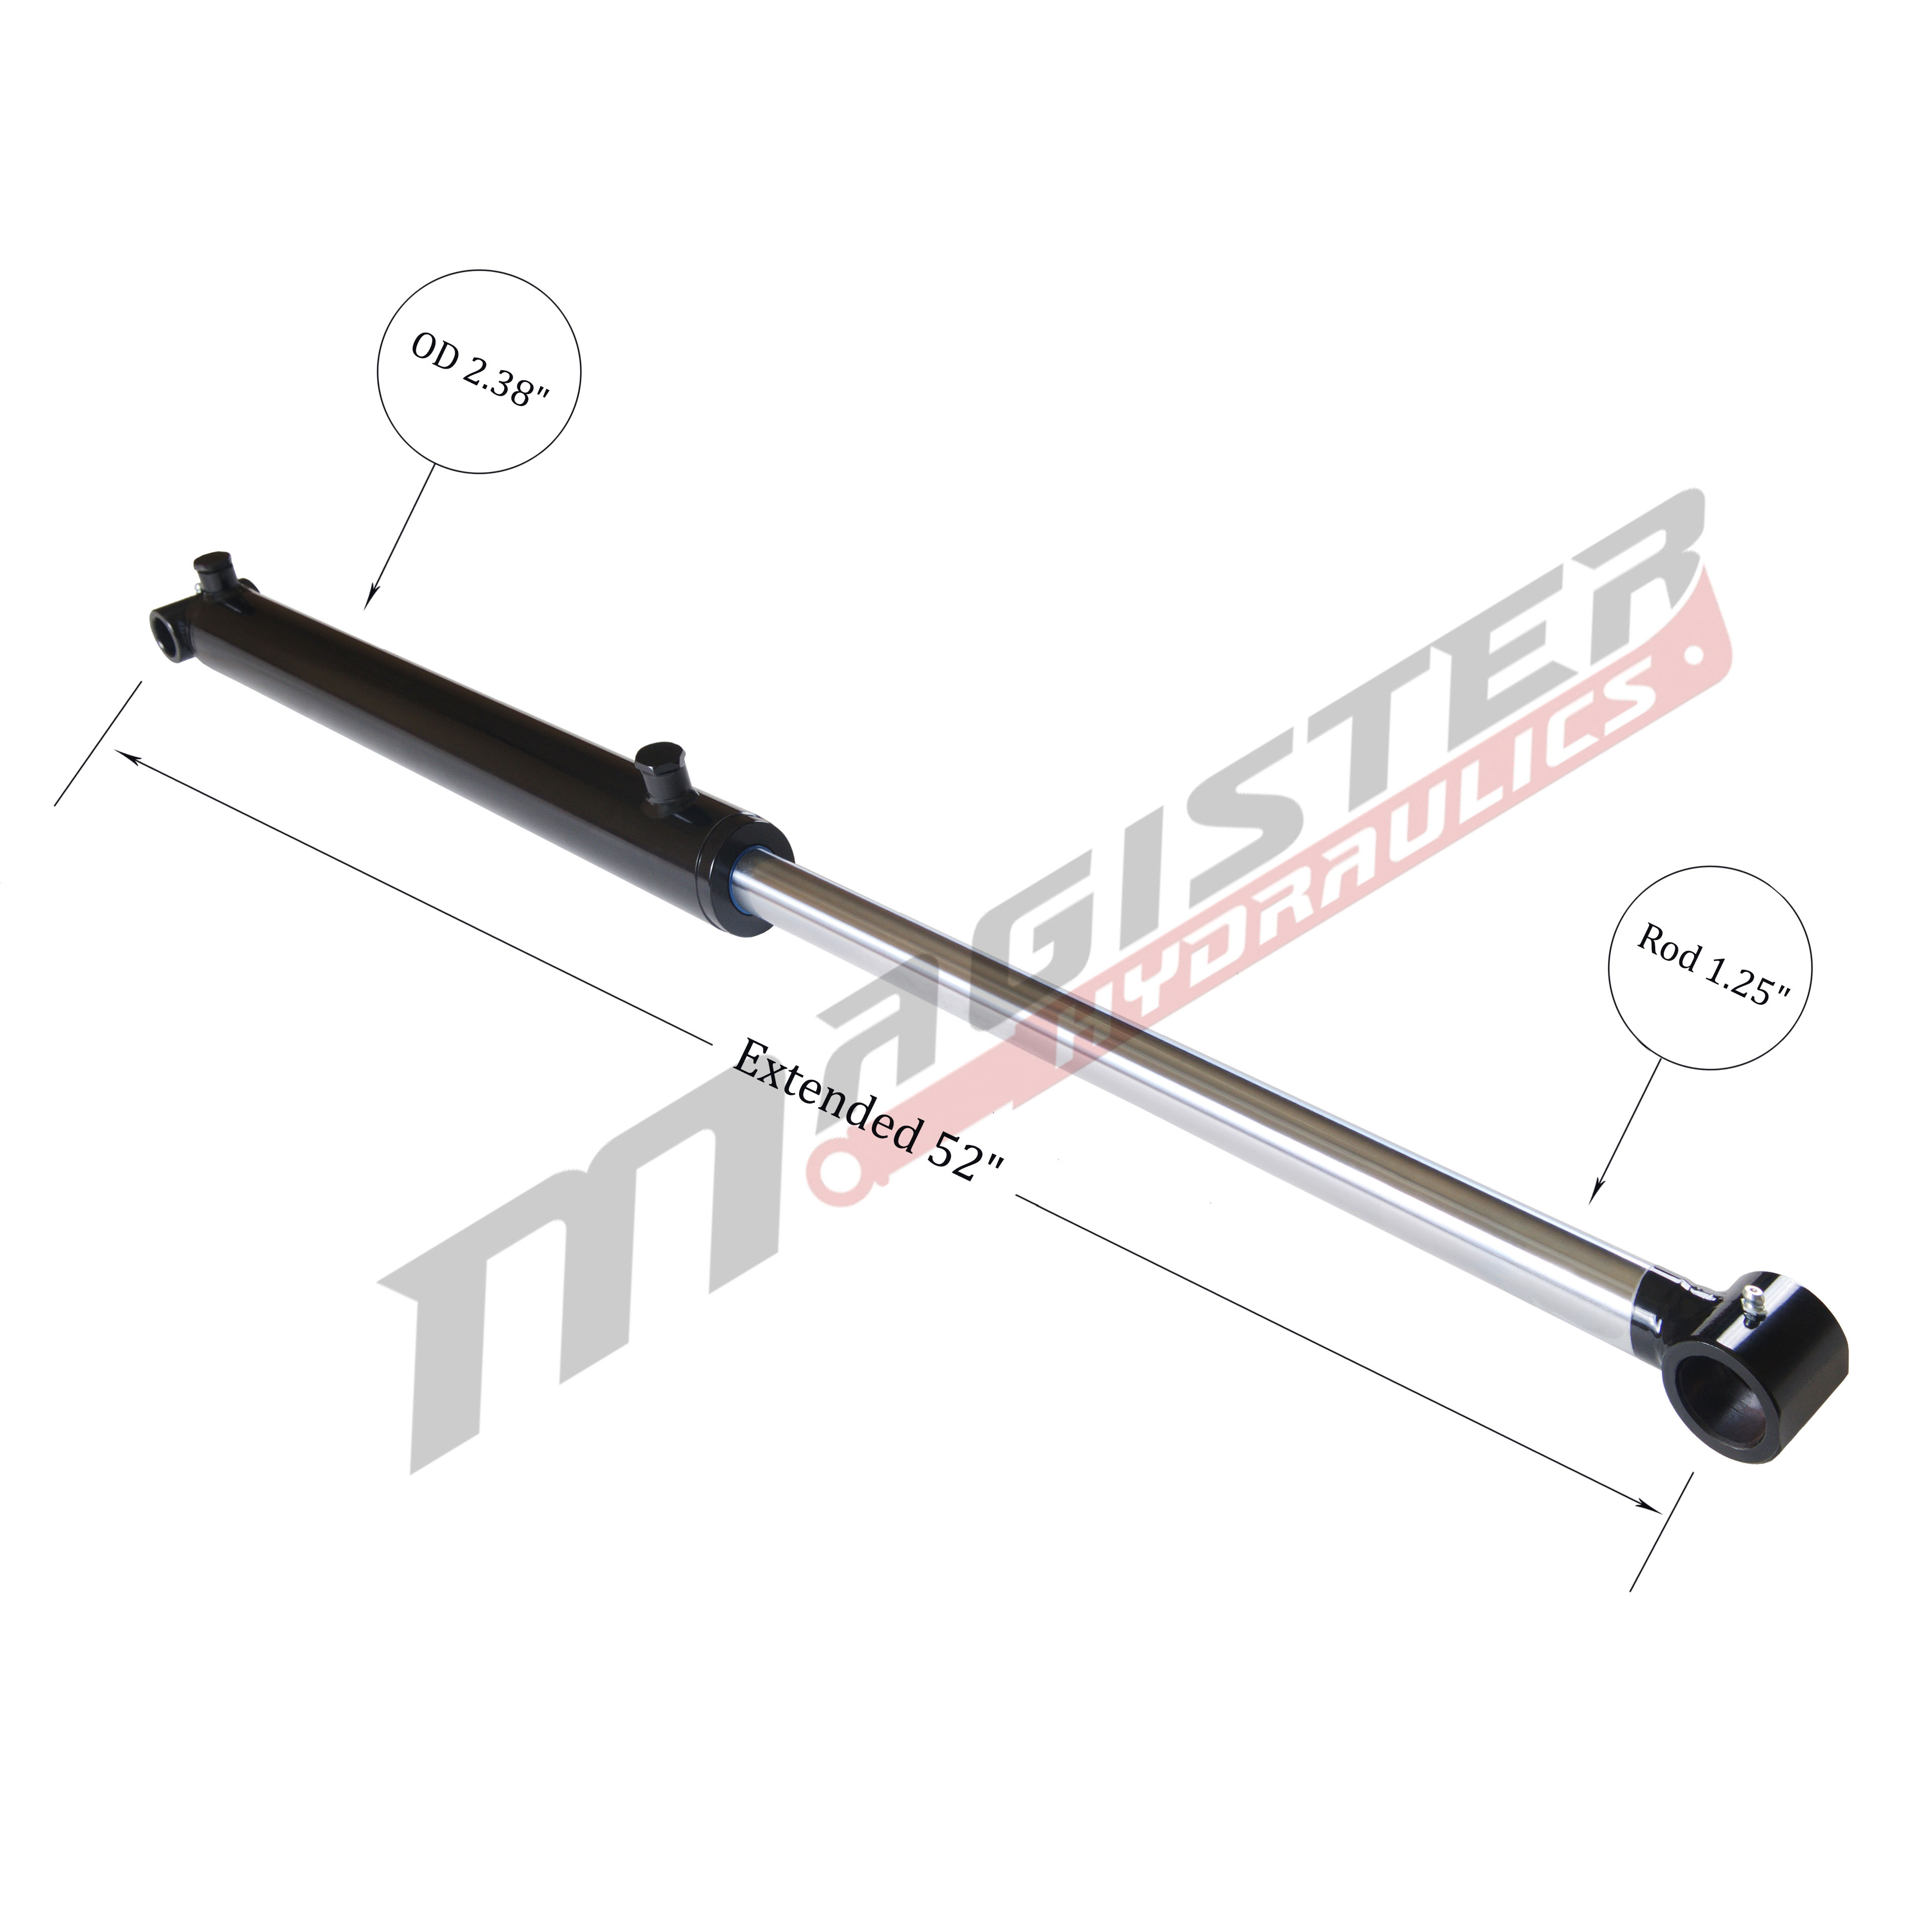 2 bore x 22 stroke hydraulic cylinder, welded cross tube double acting cylinder | Magister Hydraulics